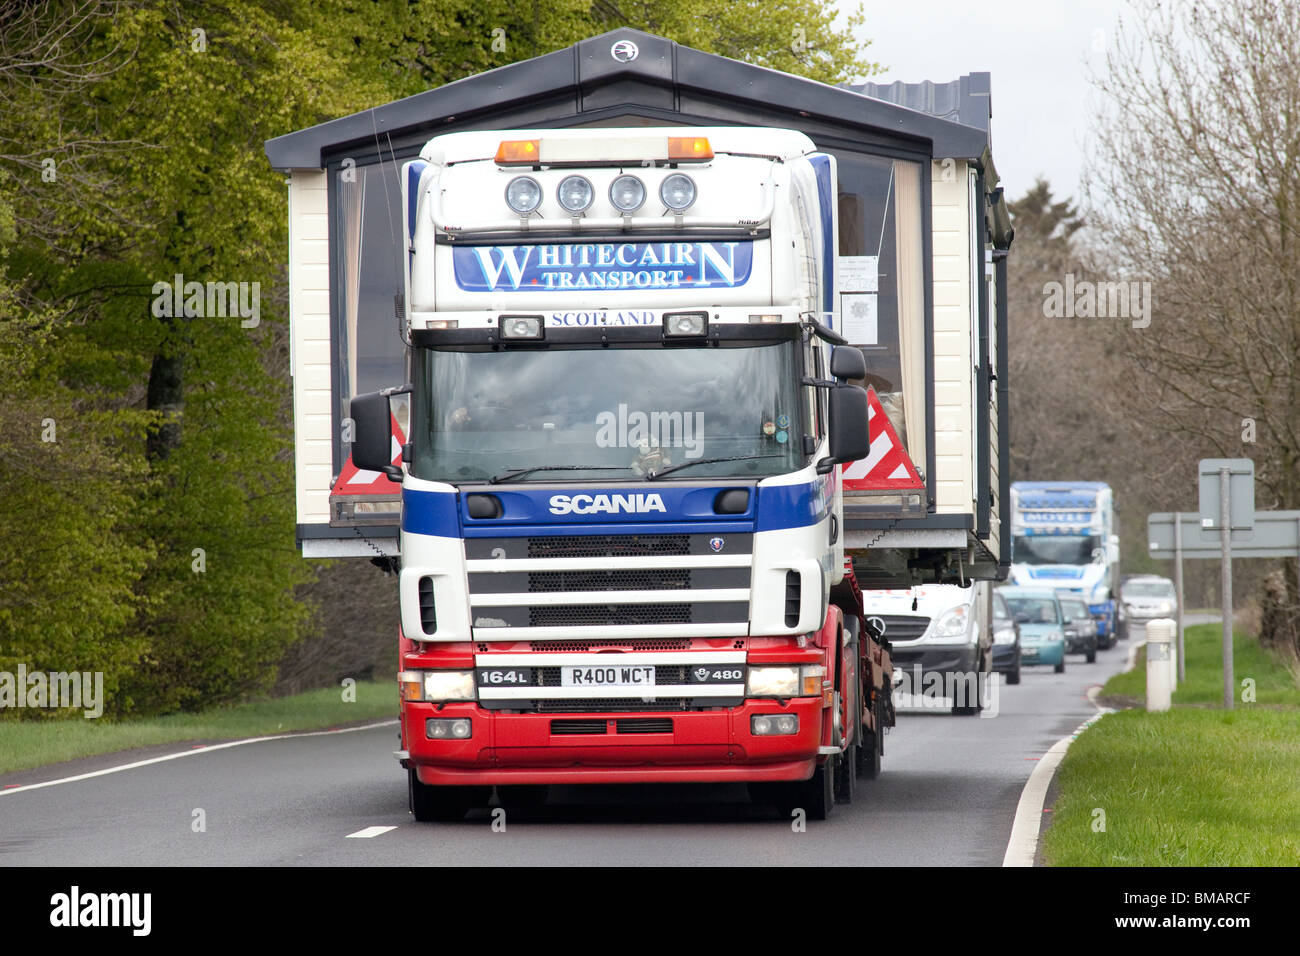 A wide or abnormal load on the back of a lorry traveling along road A75 with queue of traffic behind UK - Stock Image